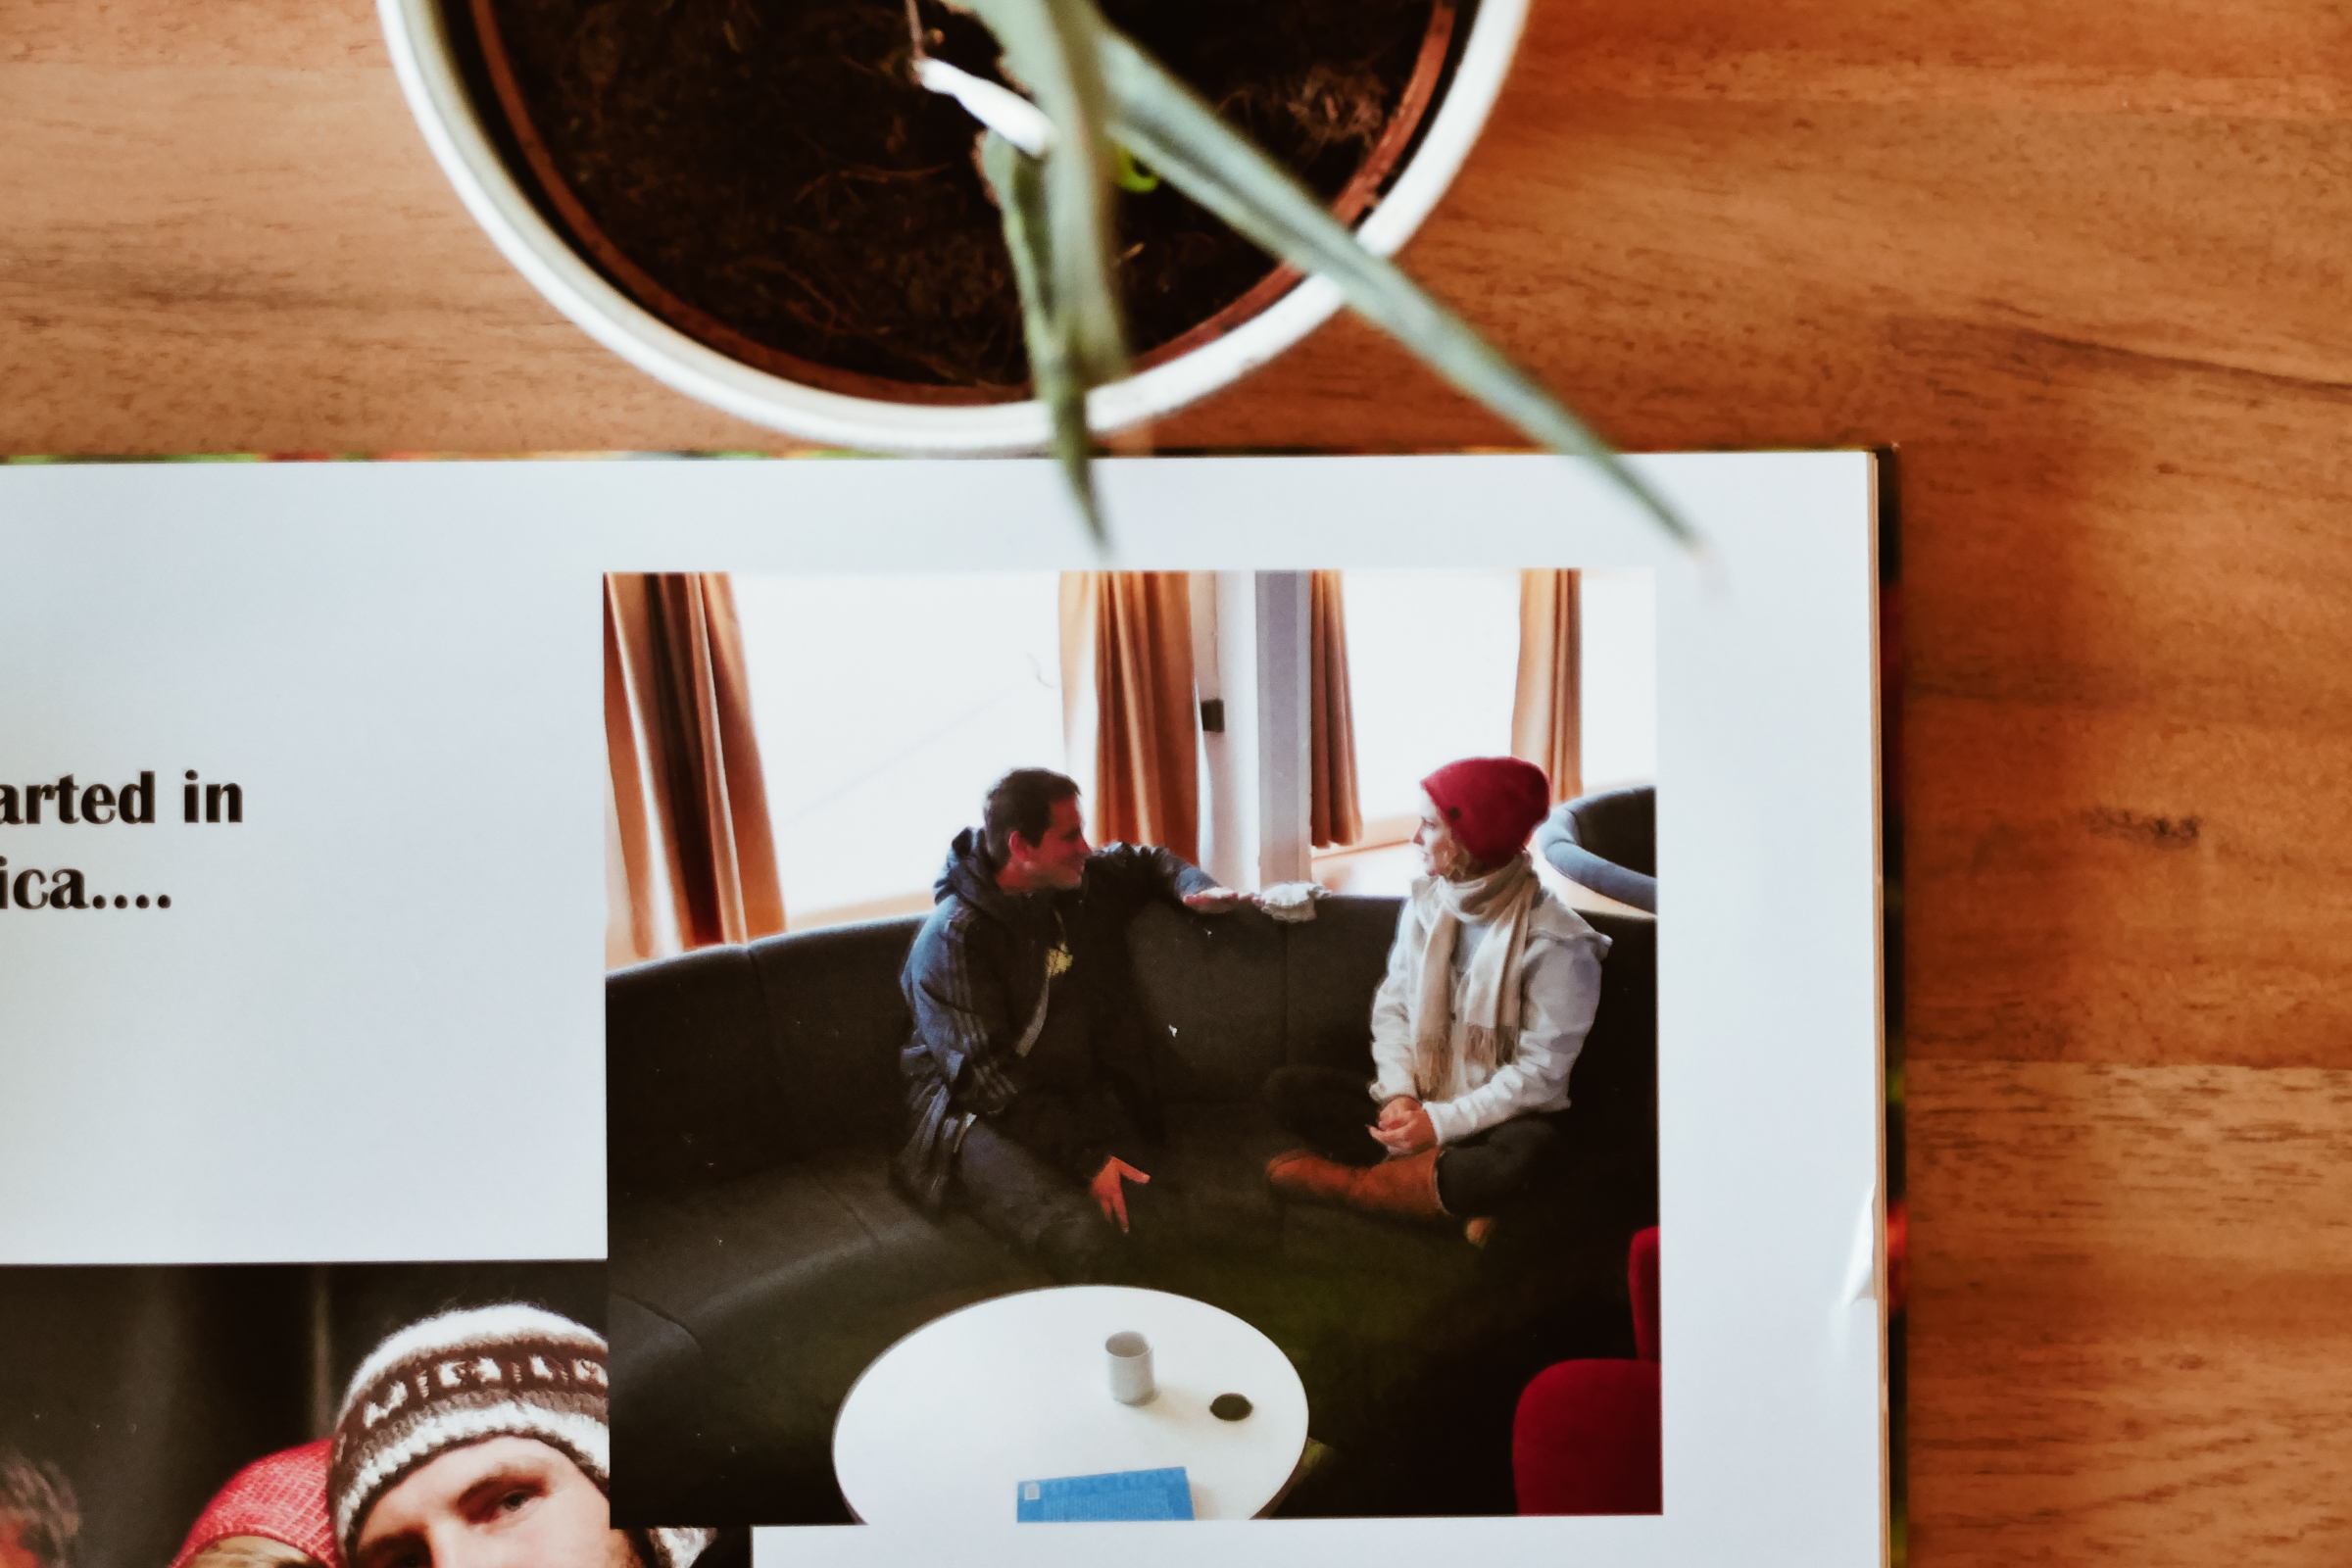 Us meeting on an expedition ship in Antarctica. Can't believe we have a photo of it.